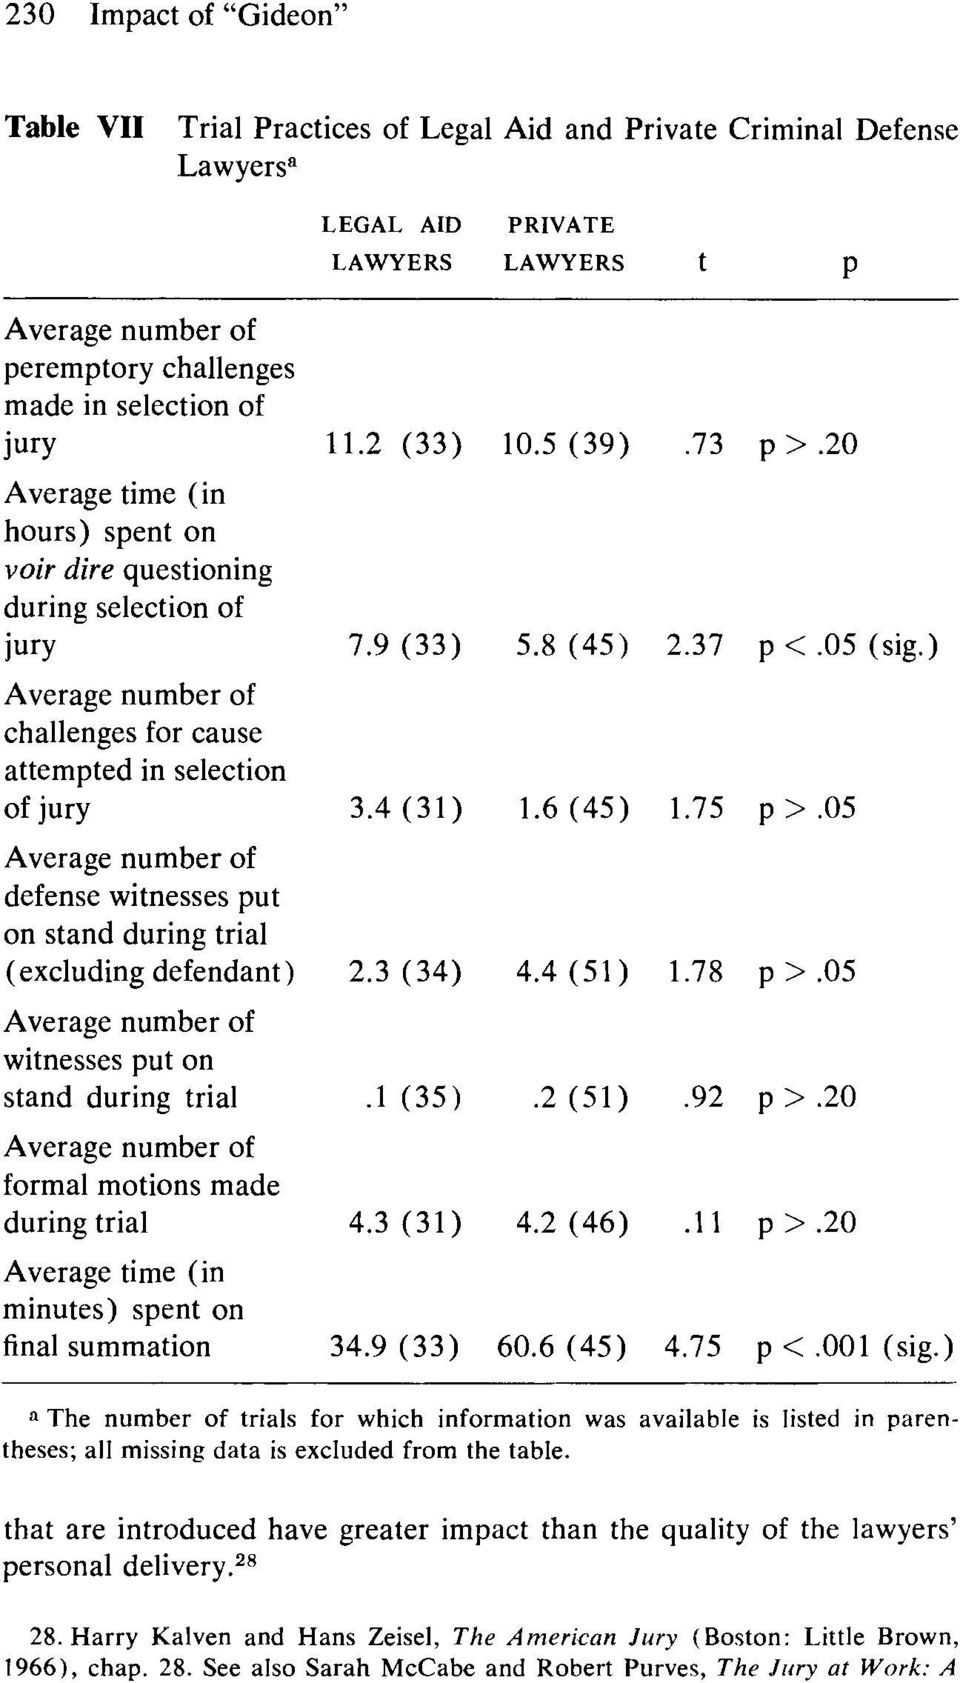 stand during trial (excluding defendant) Average number of witnesses put on stand during trial Average number of formal motions made during trial Average time (in minutes) spent on final summation 11.